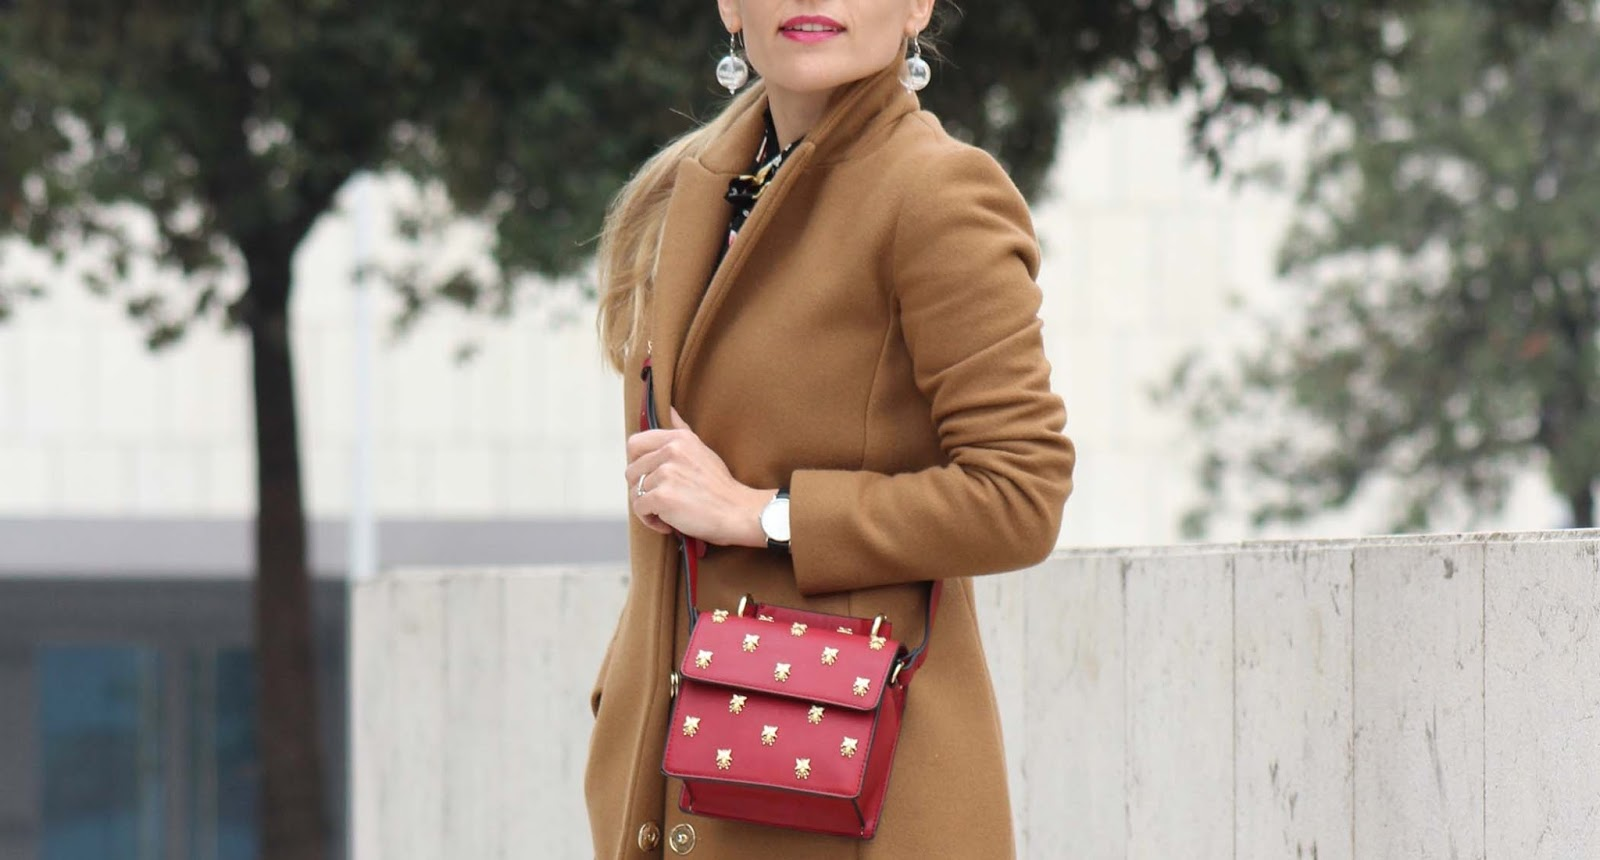 Eniwhere Fashion - Camel coat and floral shirt - Coto Privado